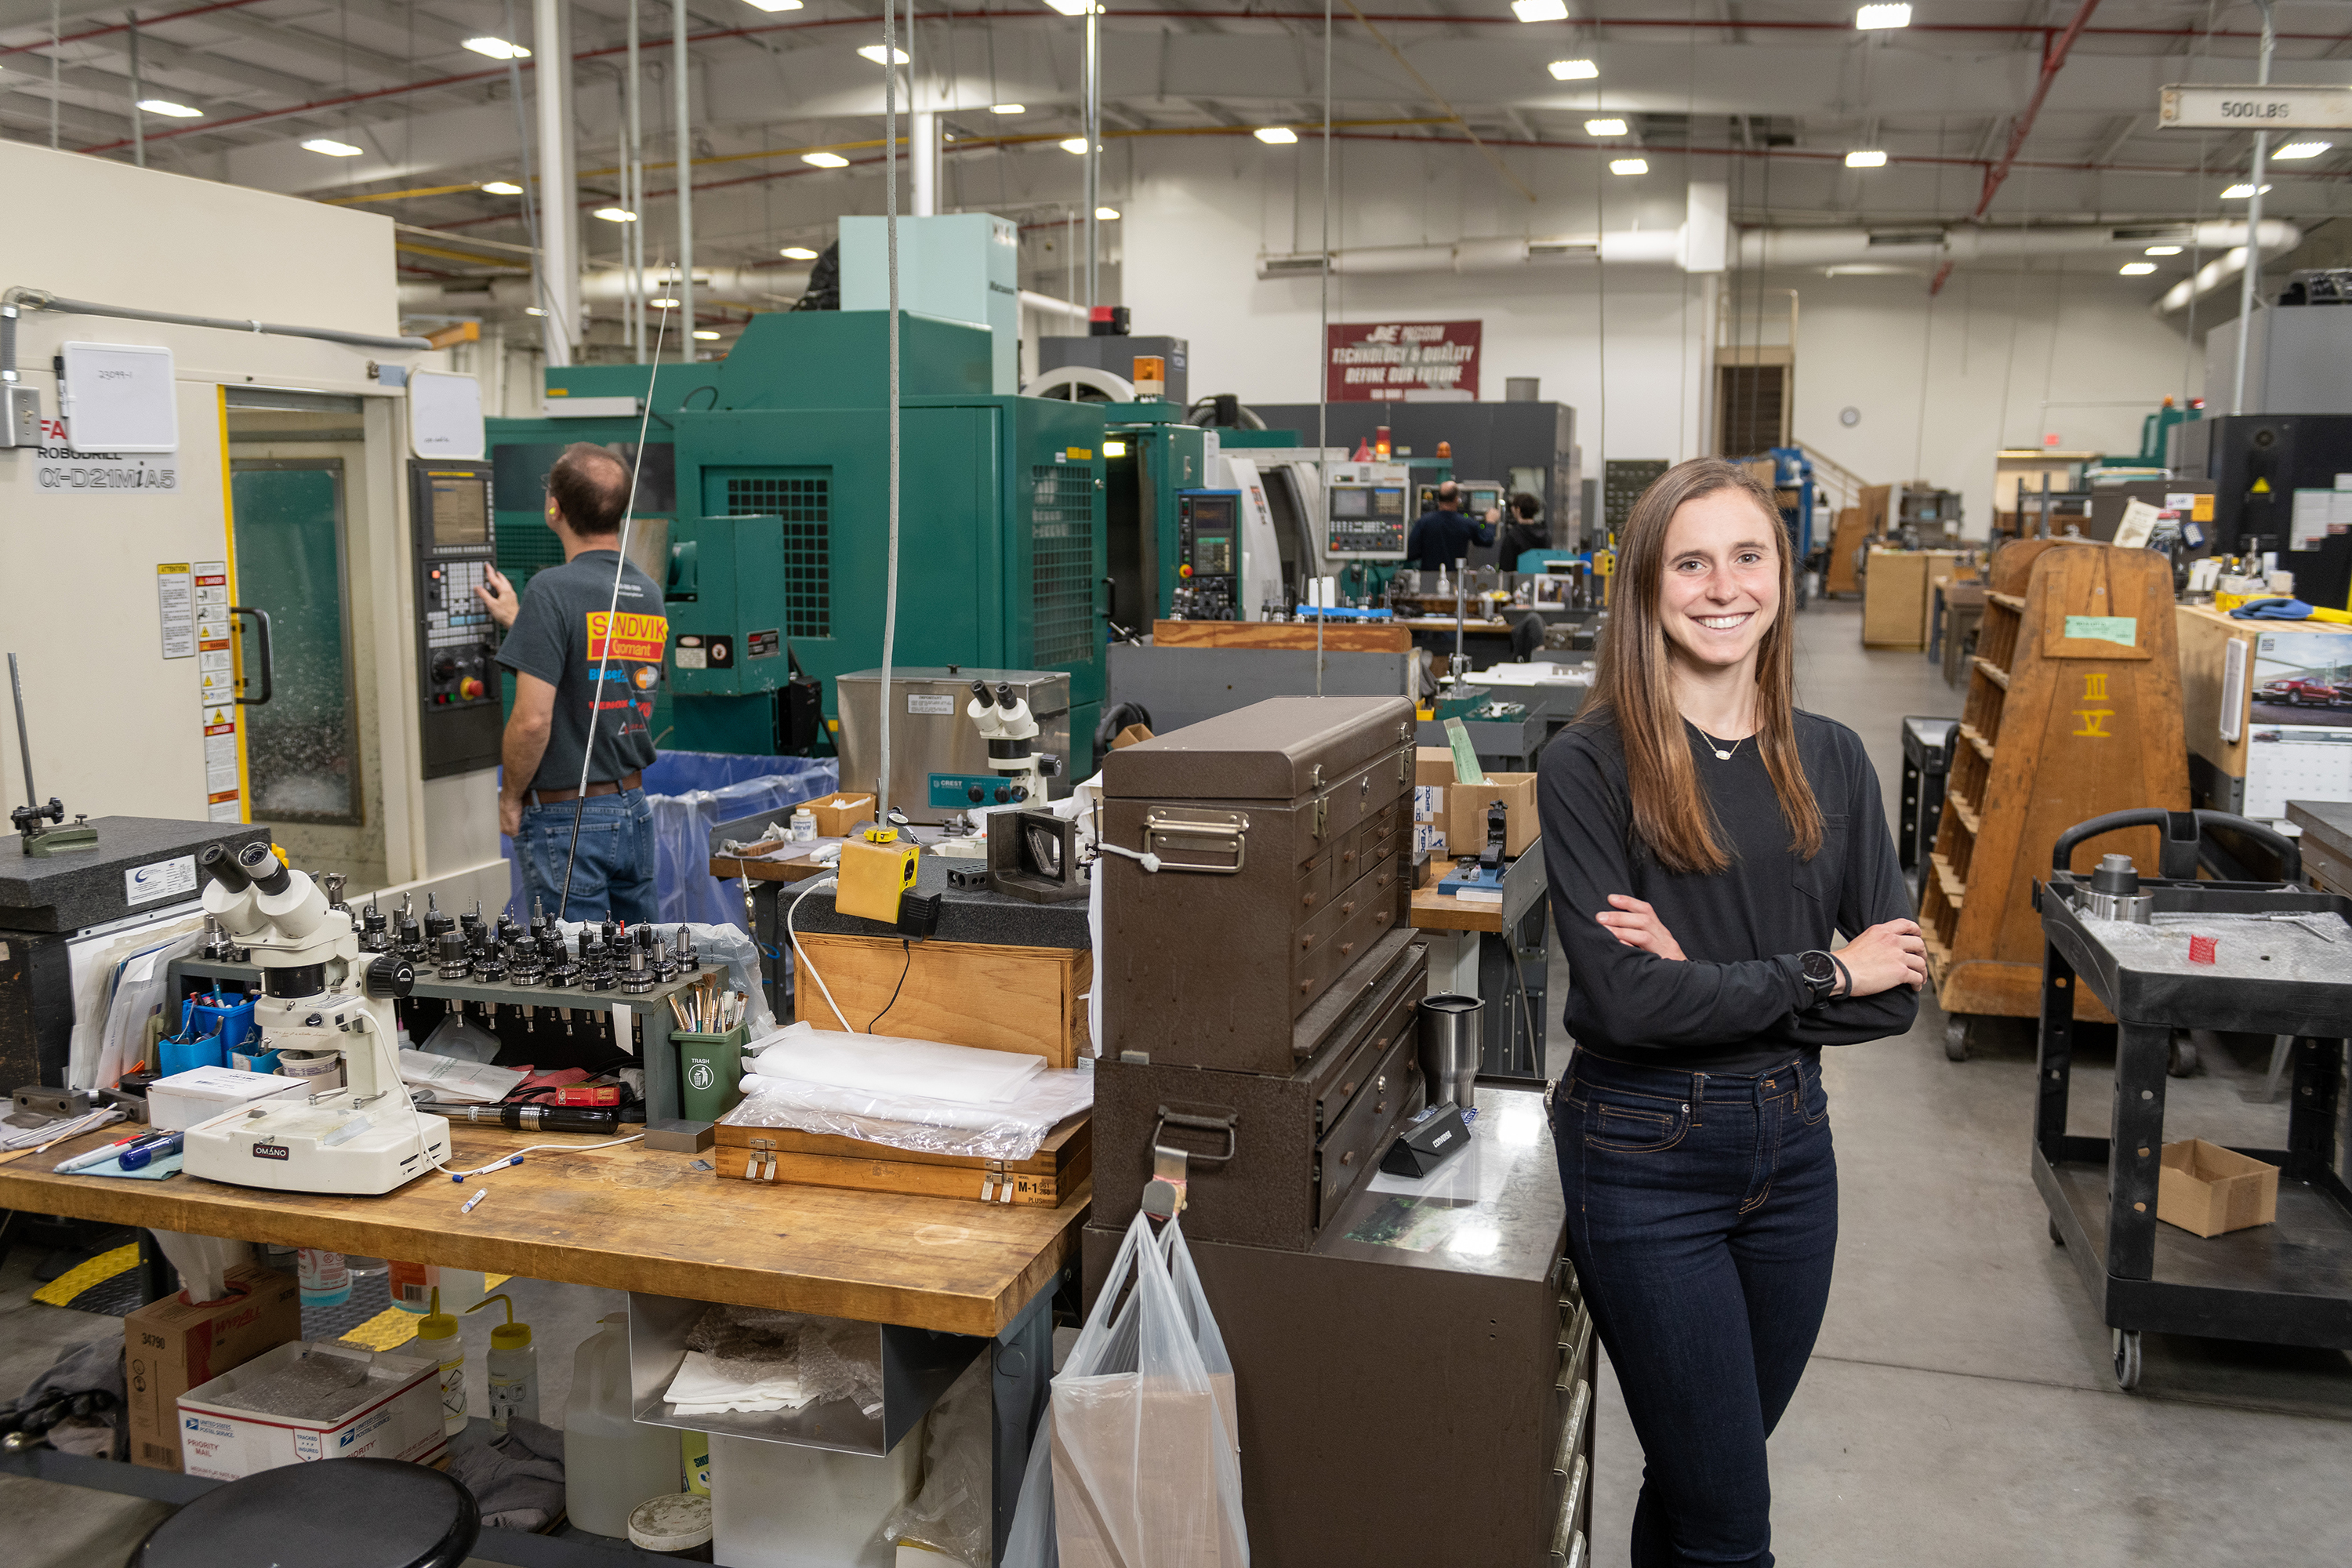 From triathlons to aerospace, Caitlin…